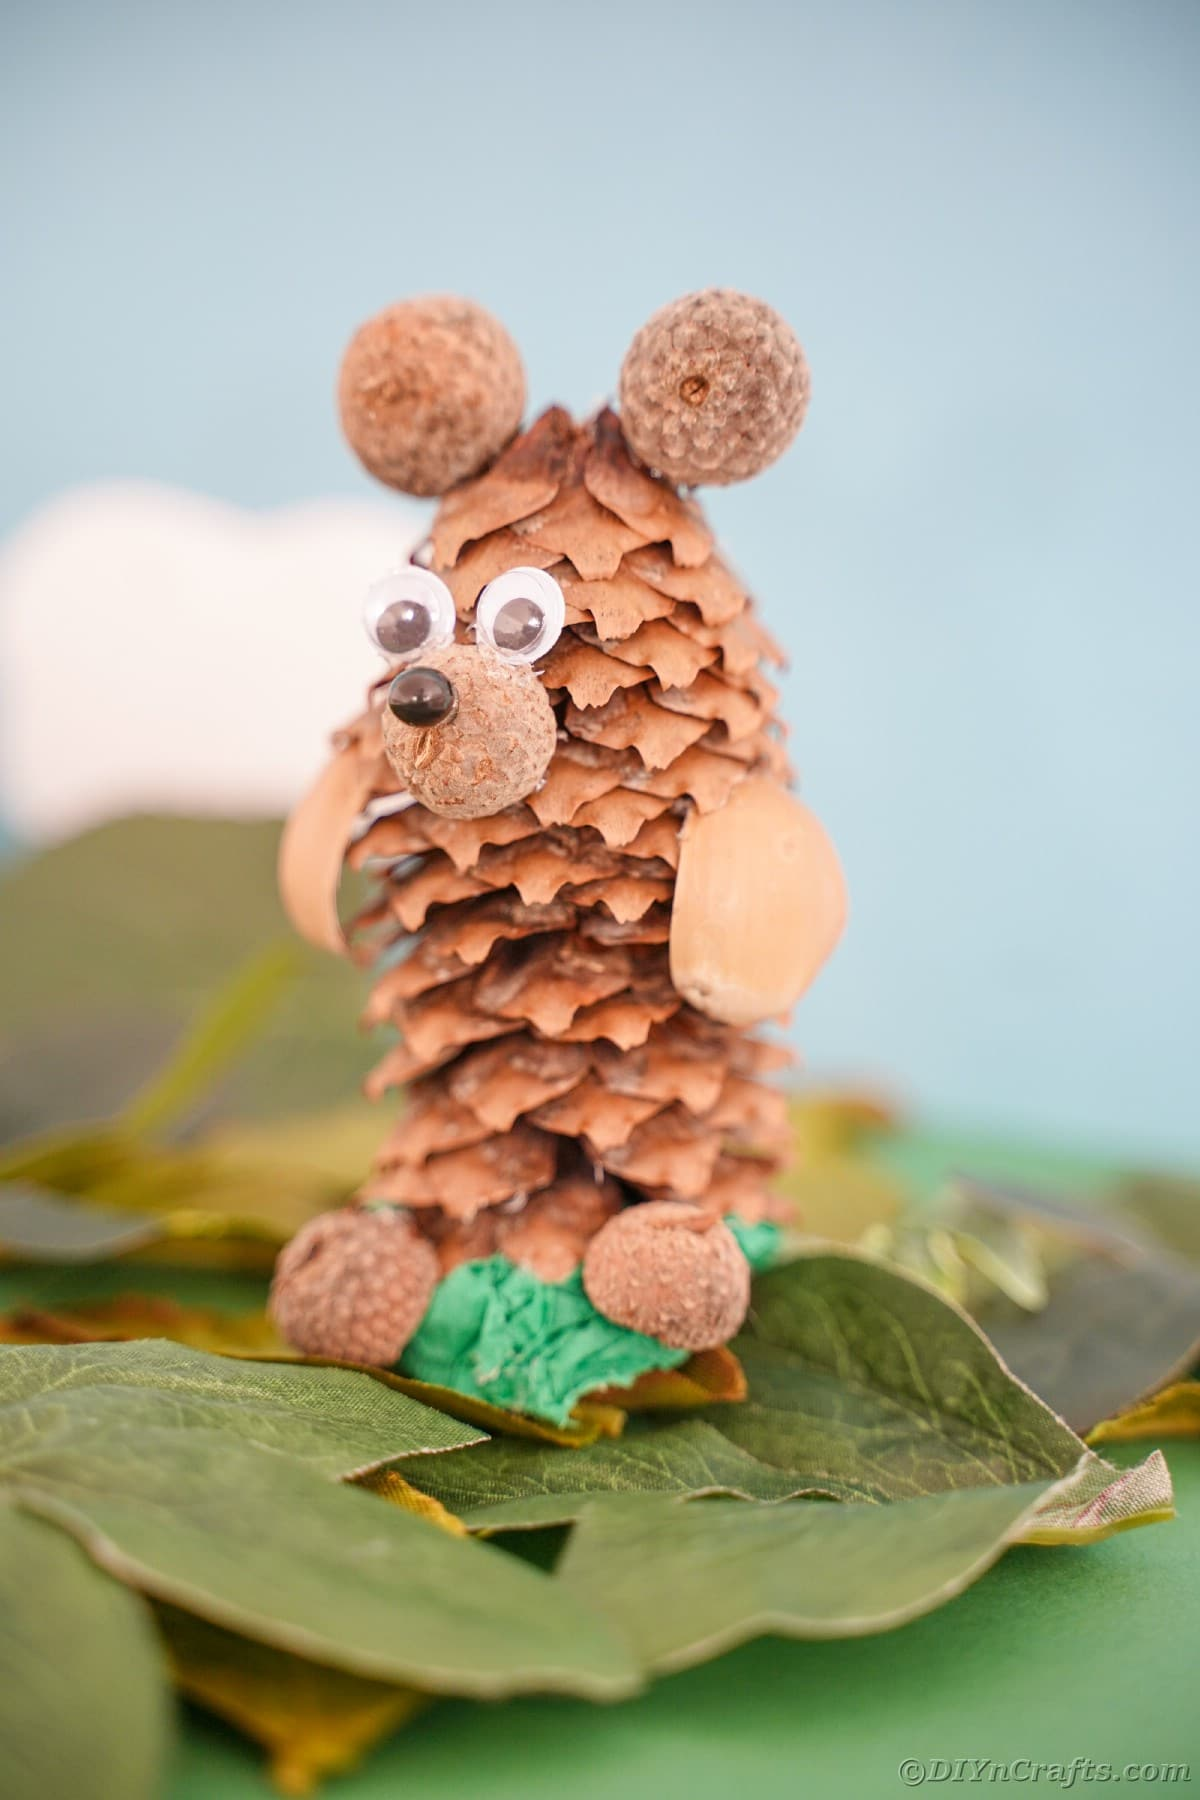 blue cloudy background behind pinecone bear